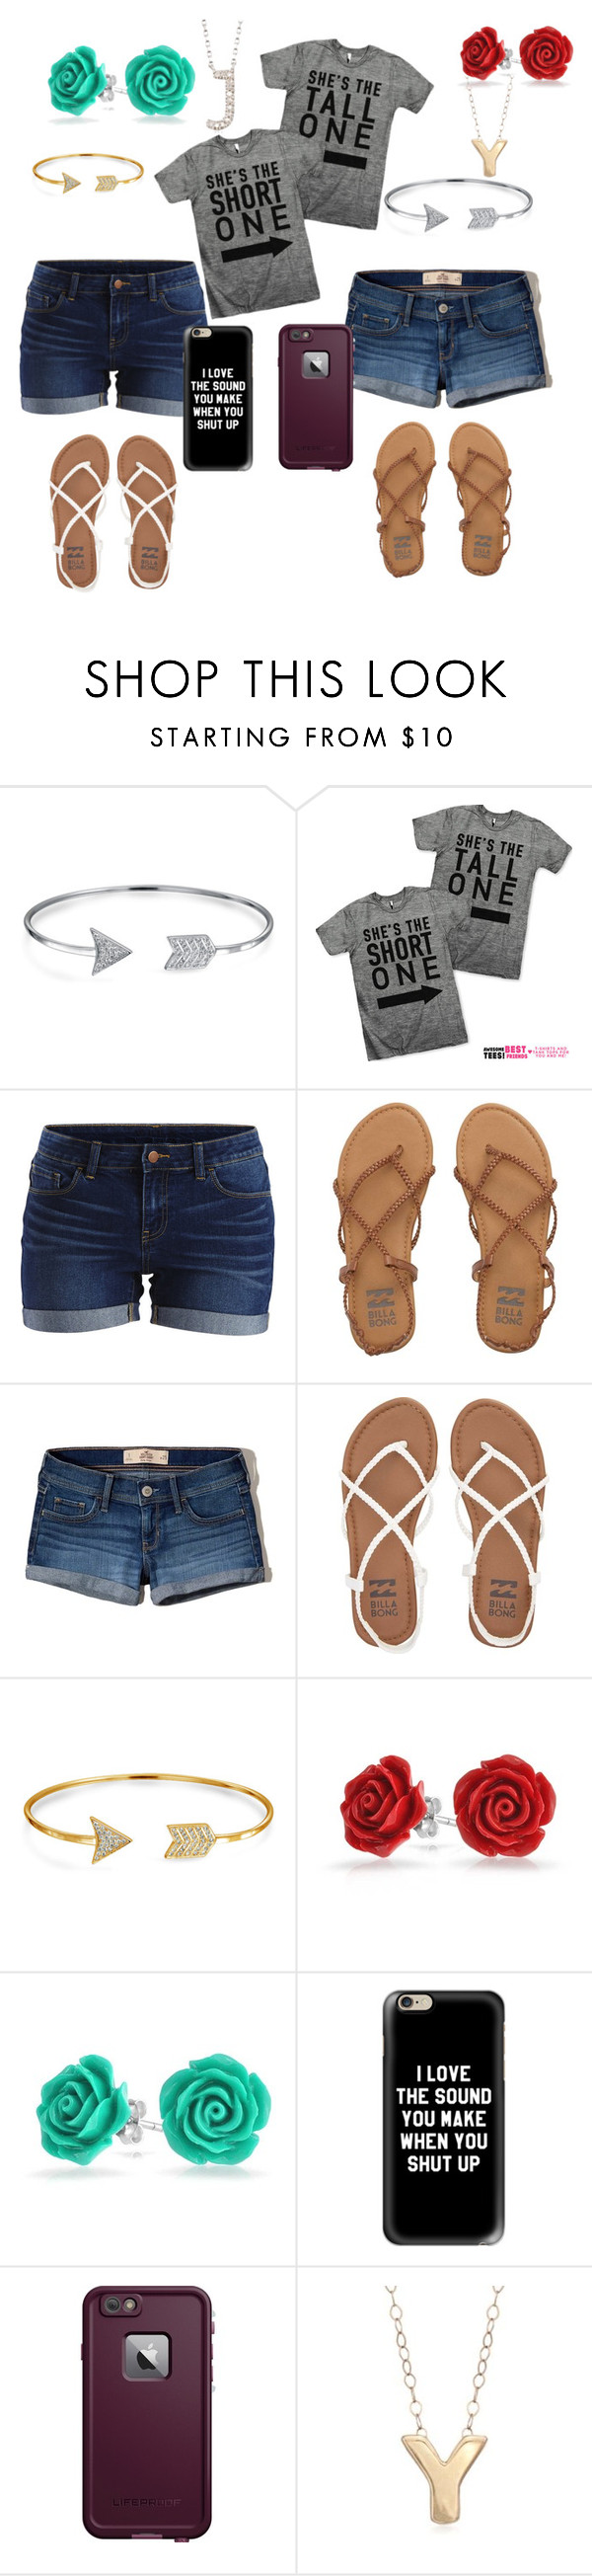 """""""Untitled #64"""" by yvette1118 ❤ liked on Polyvore featuring Bling Jewelry, VILA, Billabong, Hollister Co., Casetify, LifeProof and Ross-Simons"""